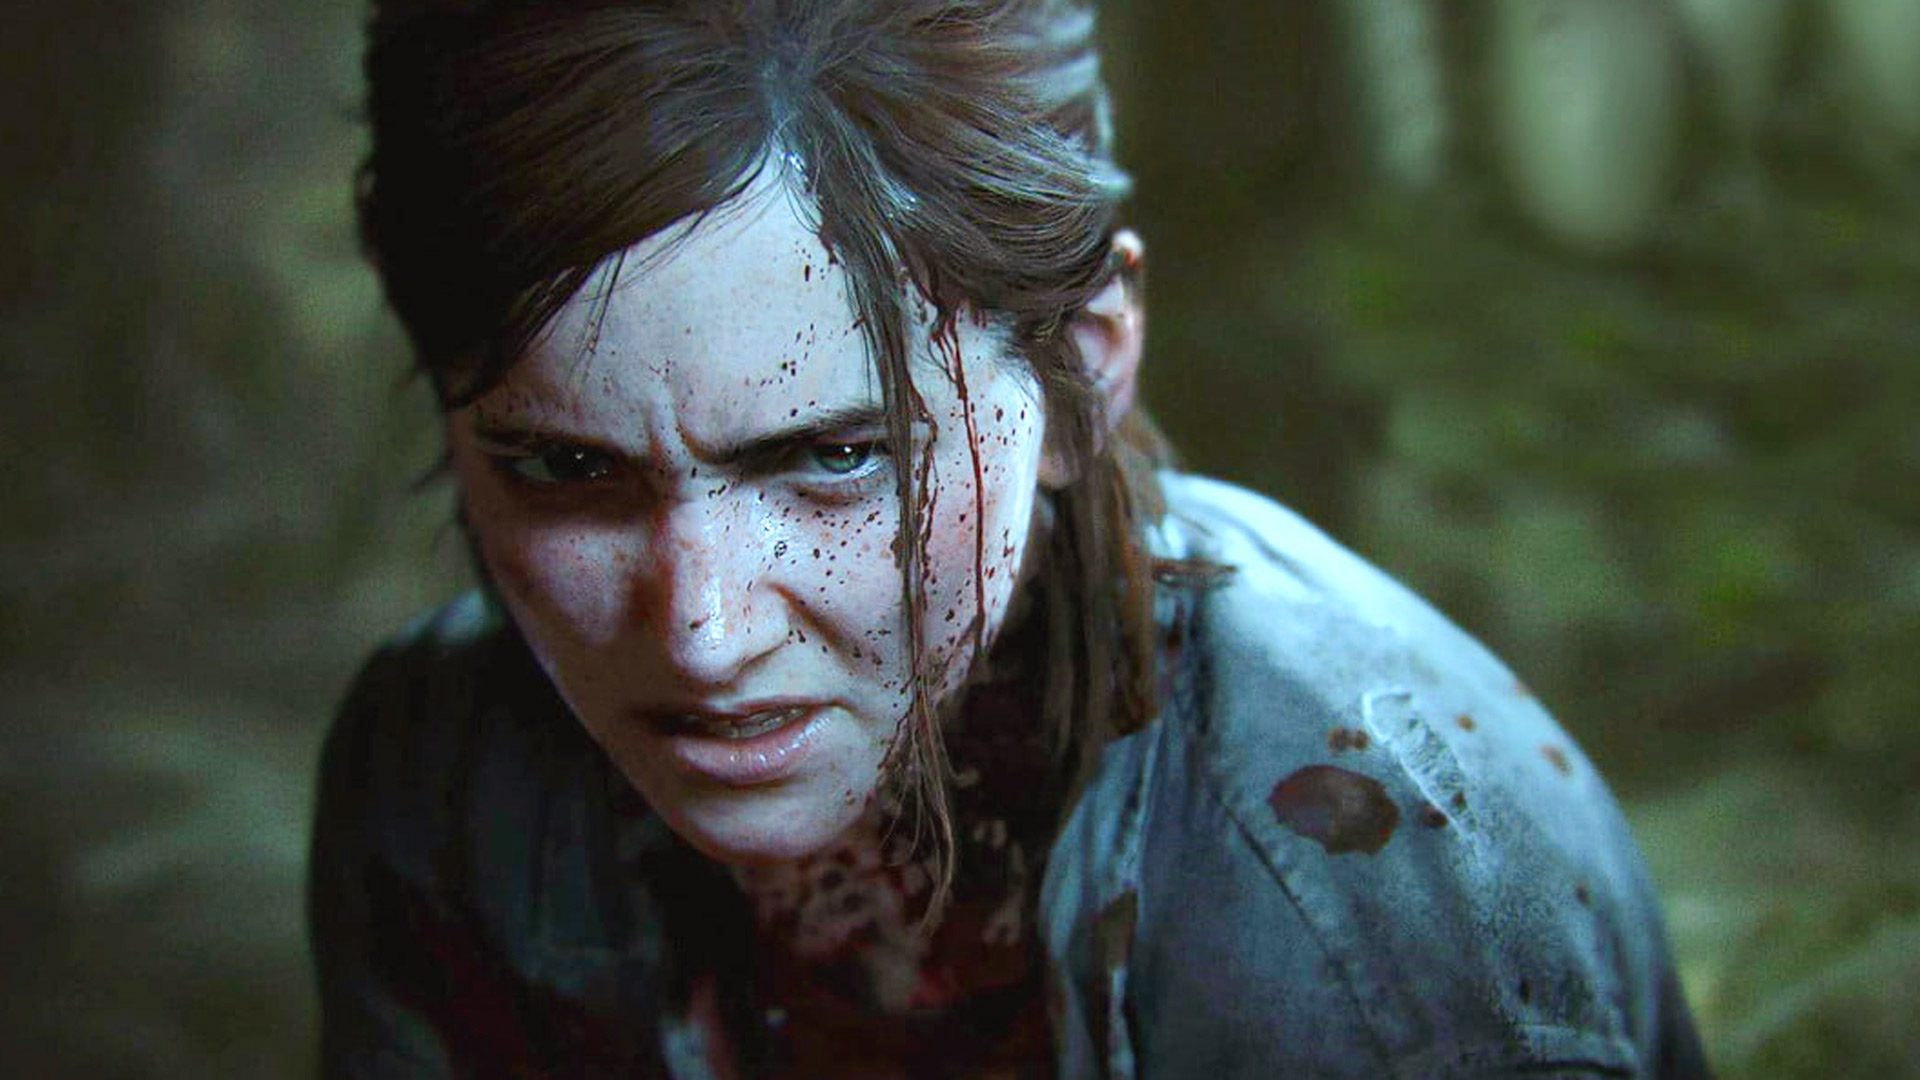 The State of Gaming June 2020: The PlayStation 5 Cometh, Optical vs. Digital, The Last of Us 2, NPD Repeats and The Outer Worlds Switches Up